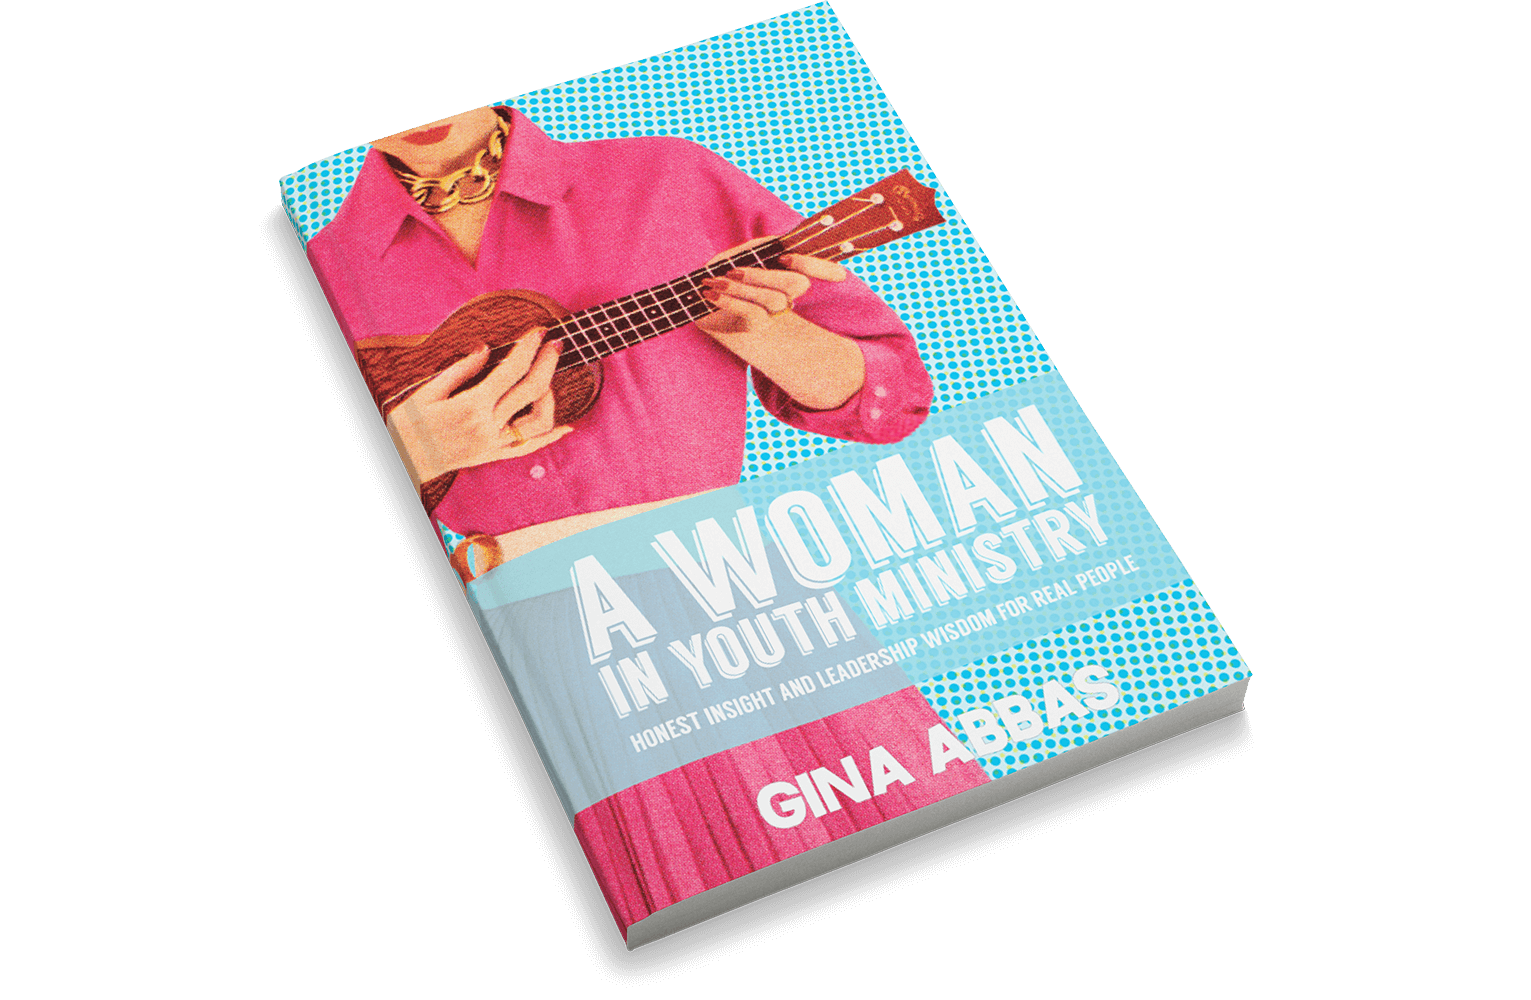 A Woman in Youth Ministry: Honest Insight and Leadership Wisdom for Real People